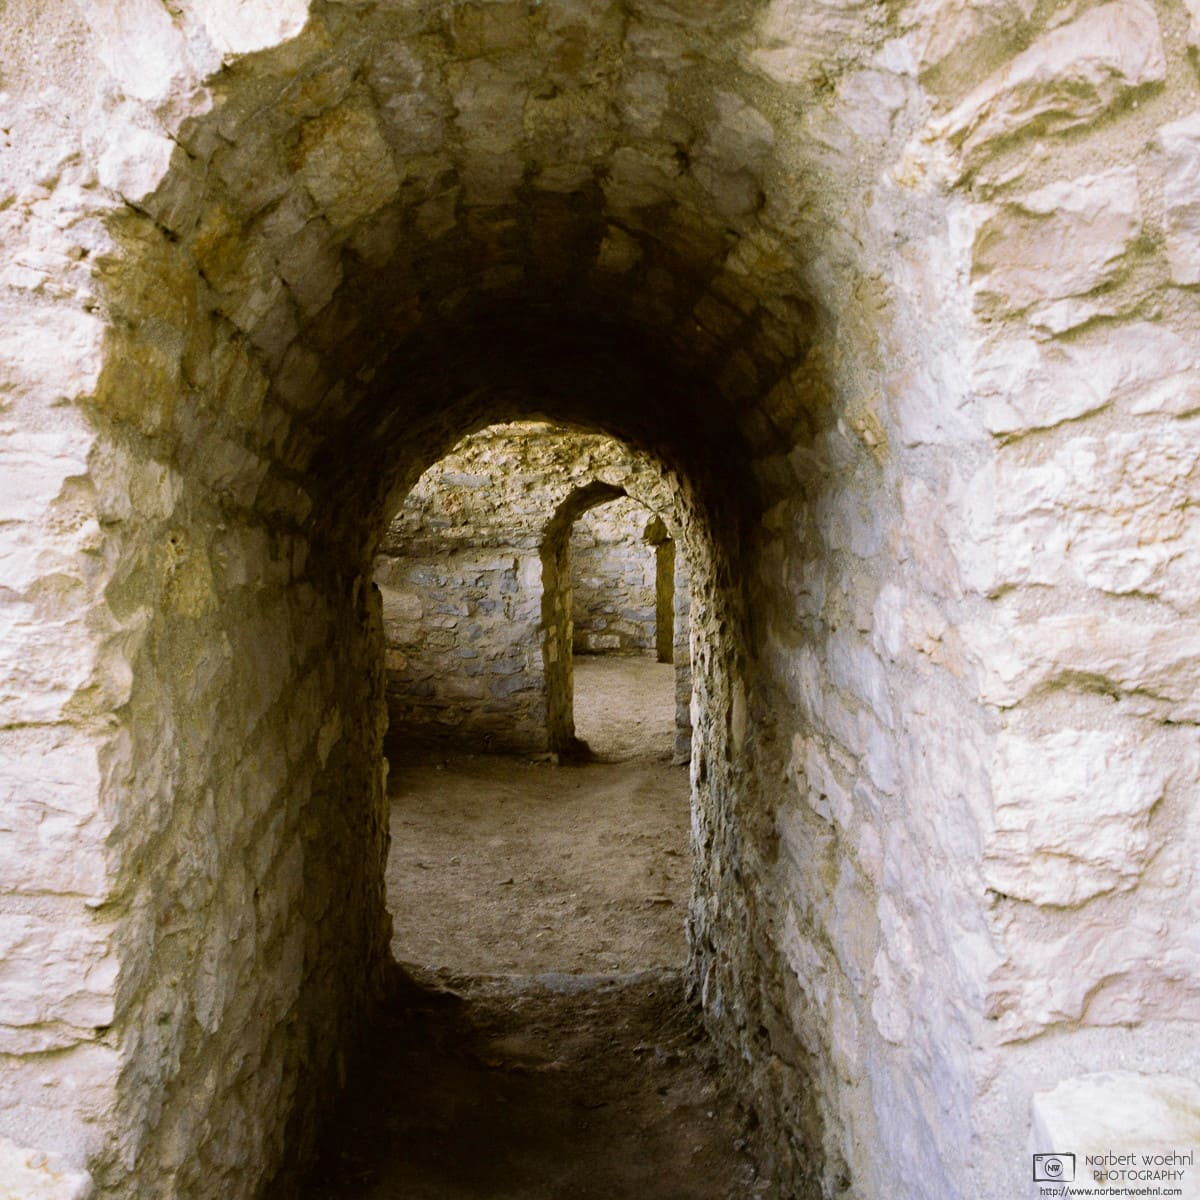 A look at the casemates of Hohenneuffen Castle in southwestern Germany. The oldest portions of these structures date back to the 16th century.